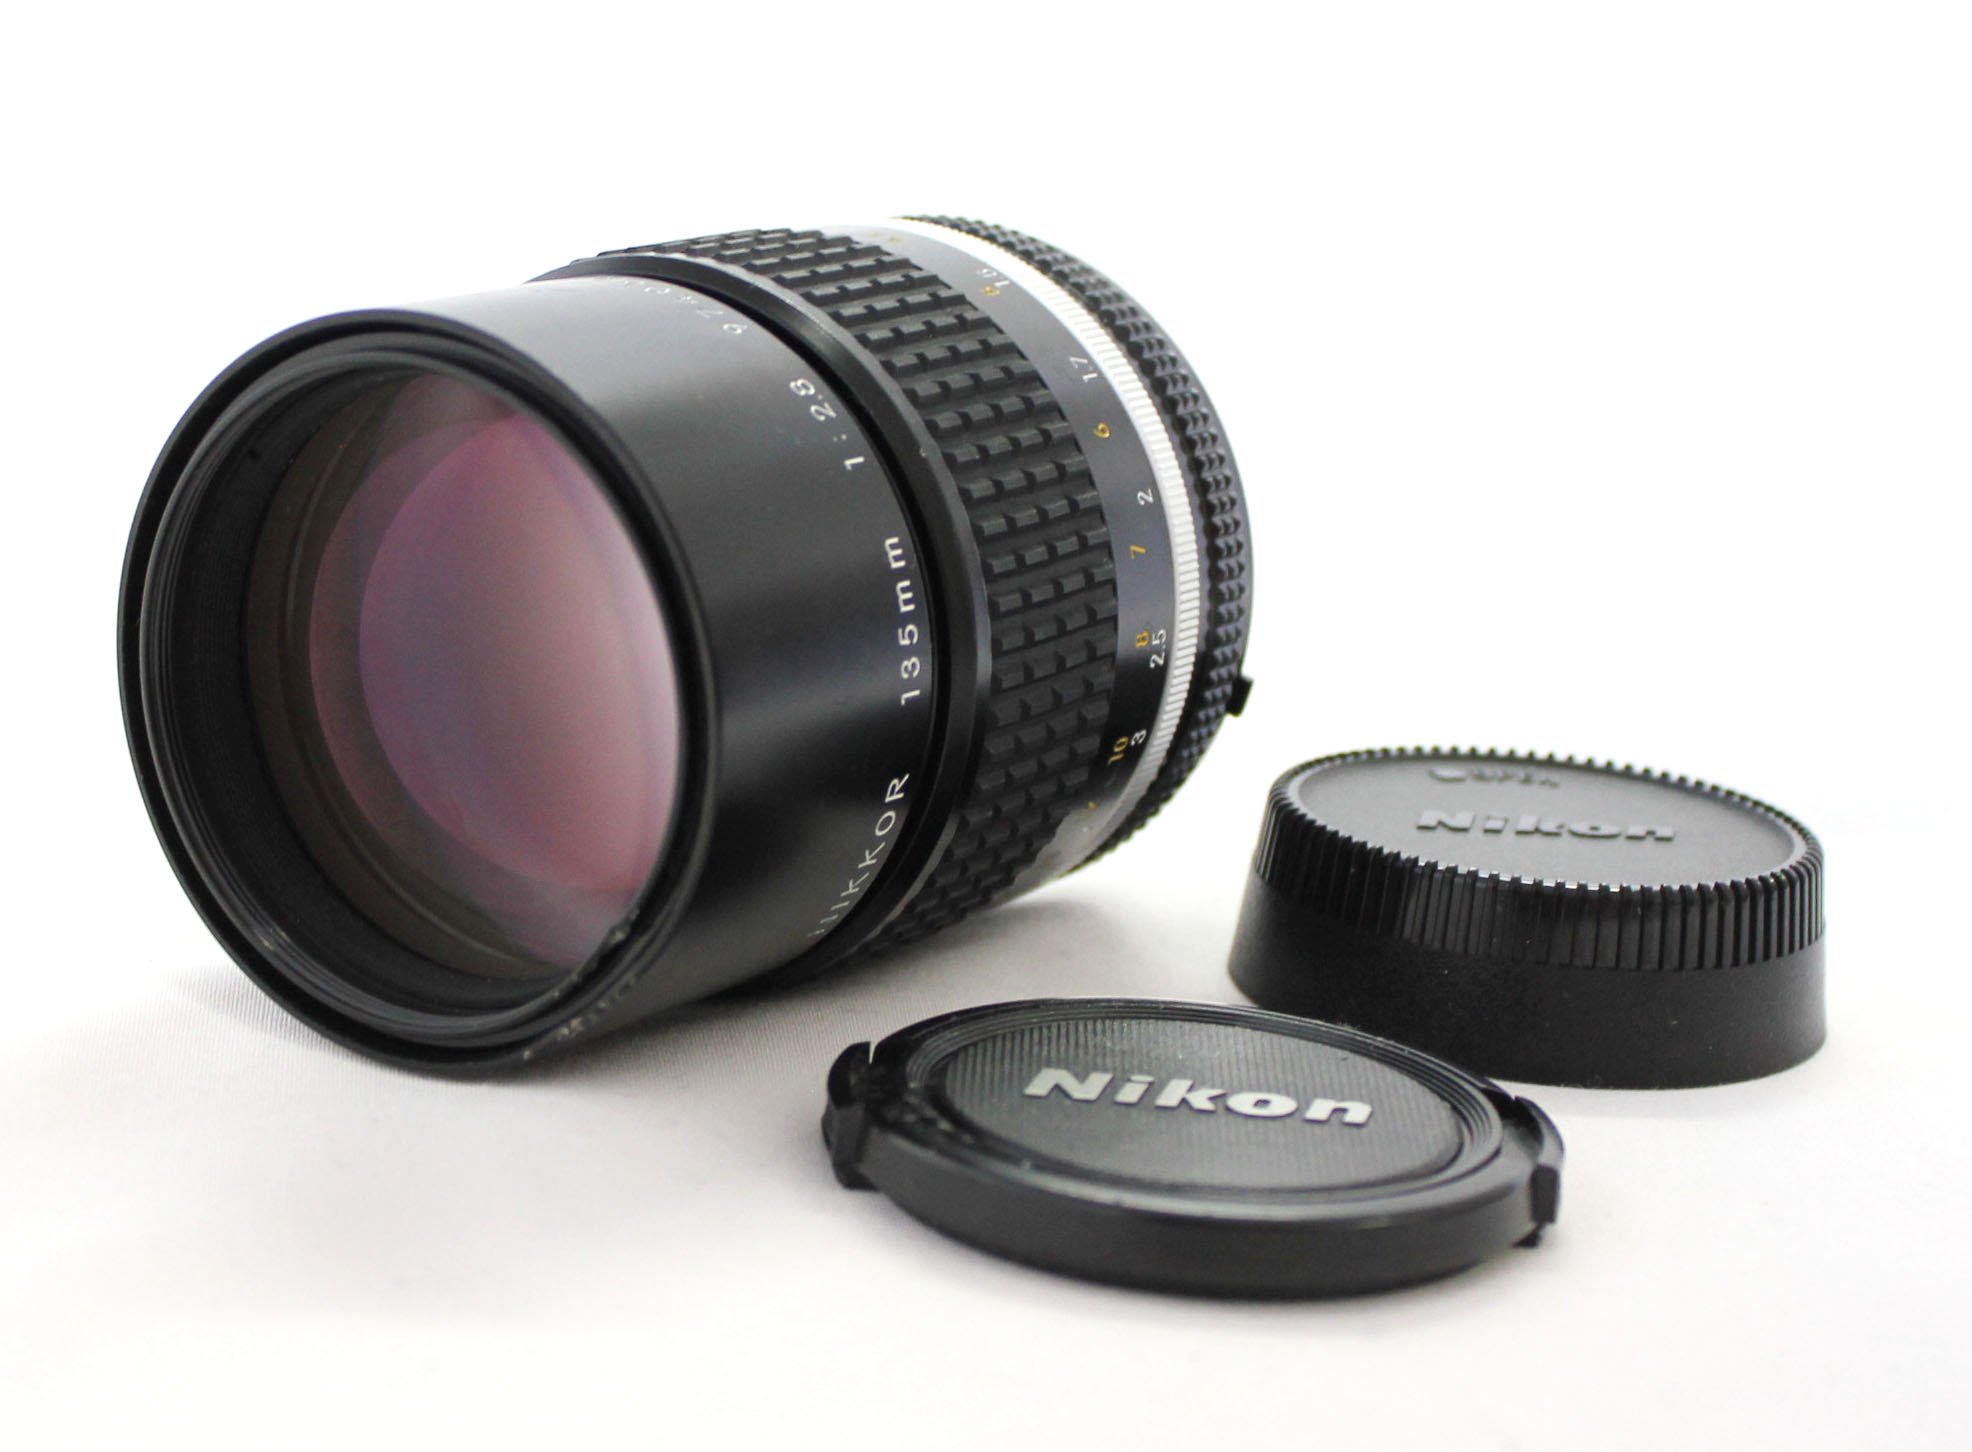 [Excellent++++] Nikon Ai-s ais Nikkor 135mm F/2.8 Telephoto MF Lens from Japan